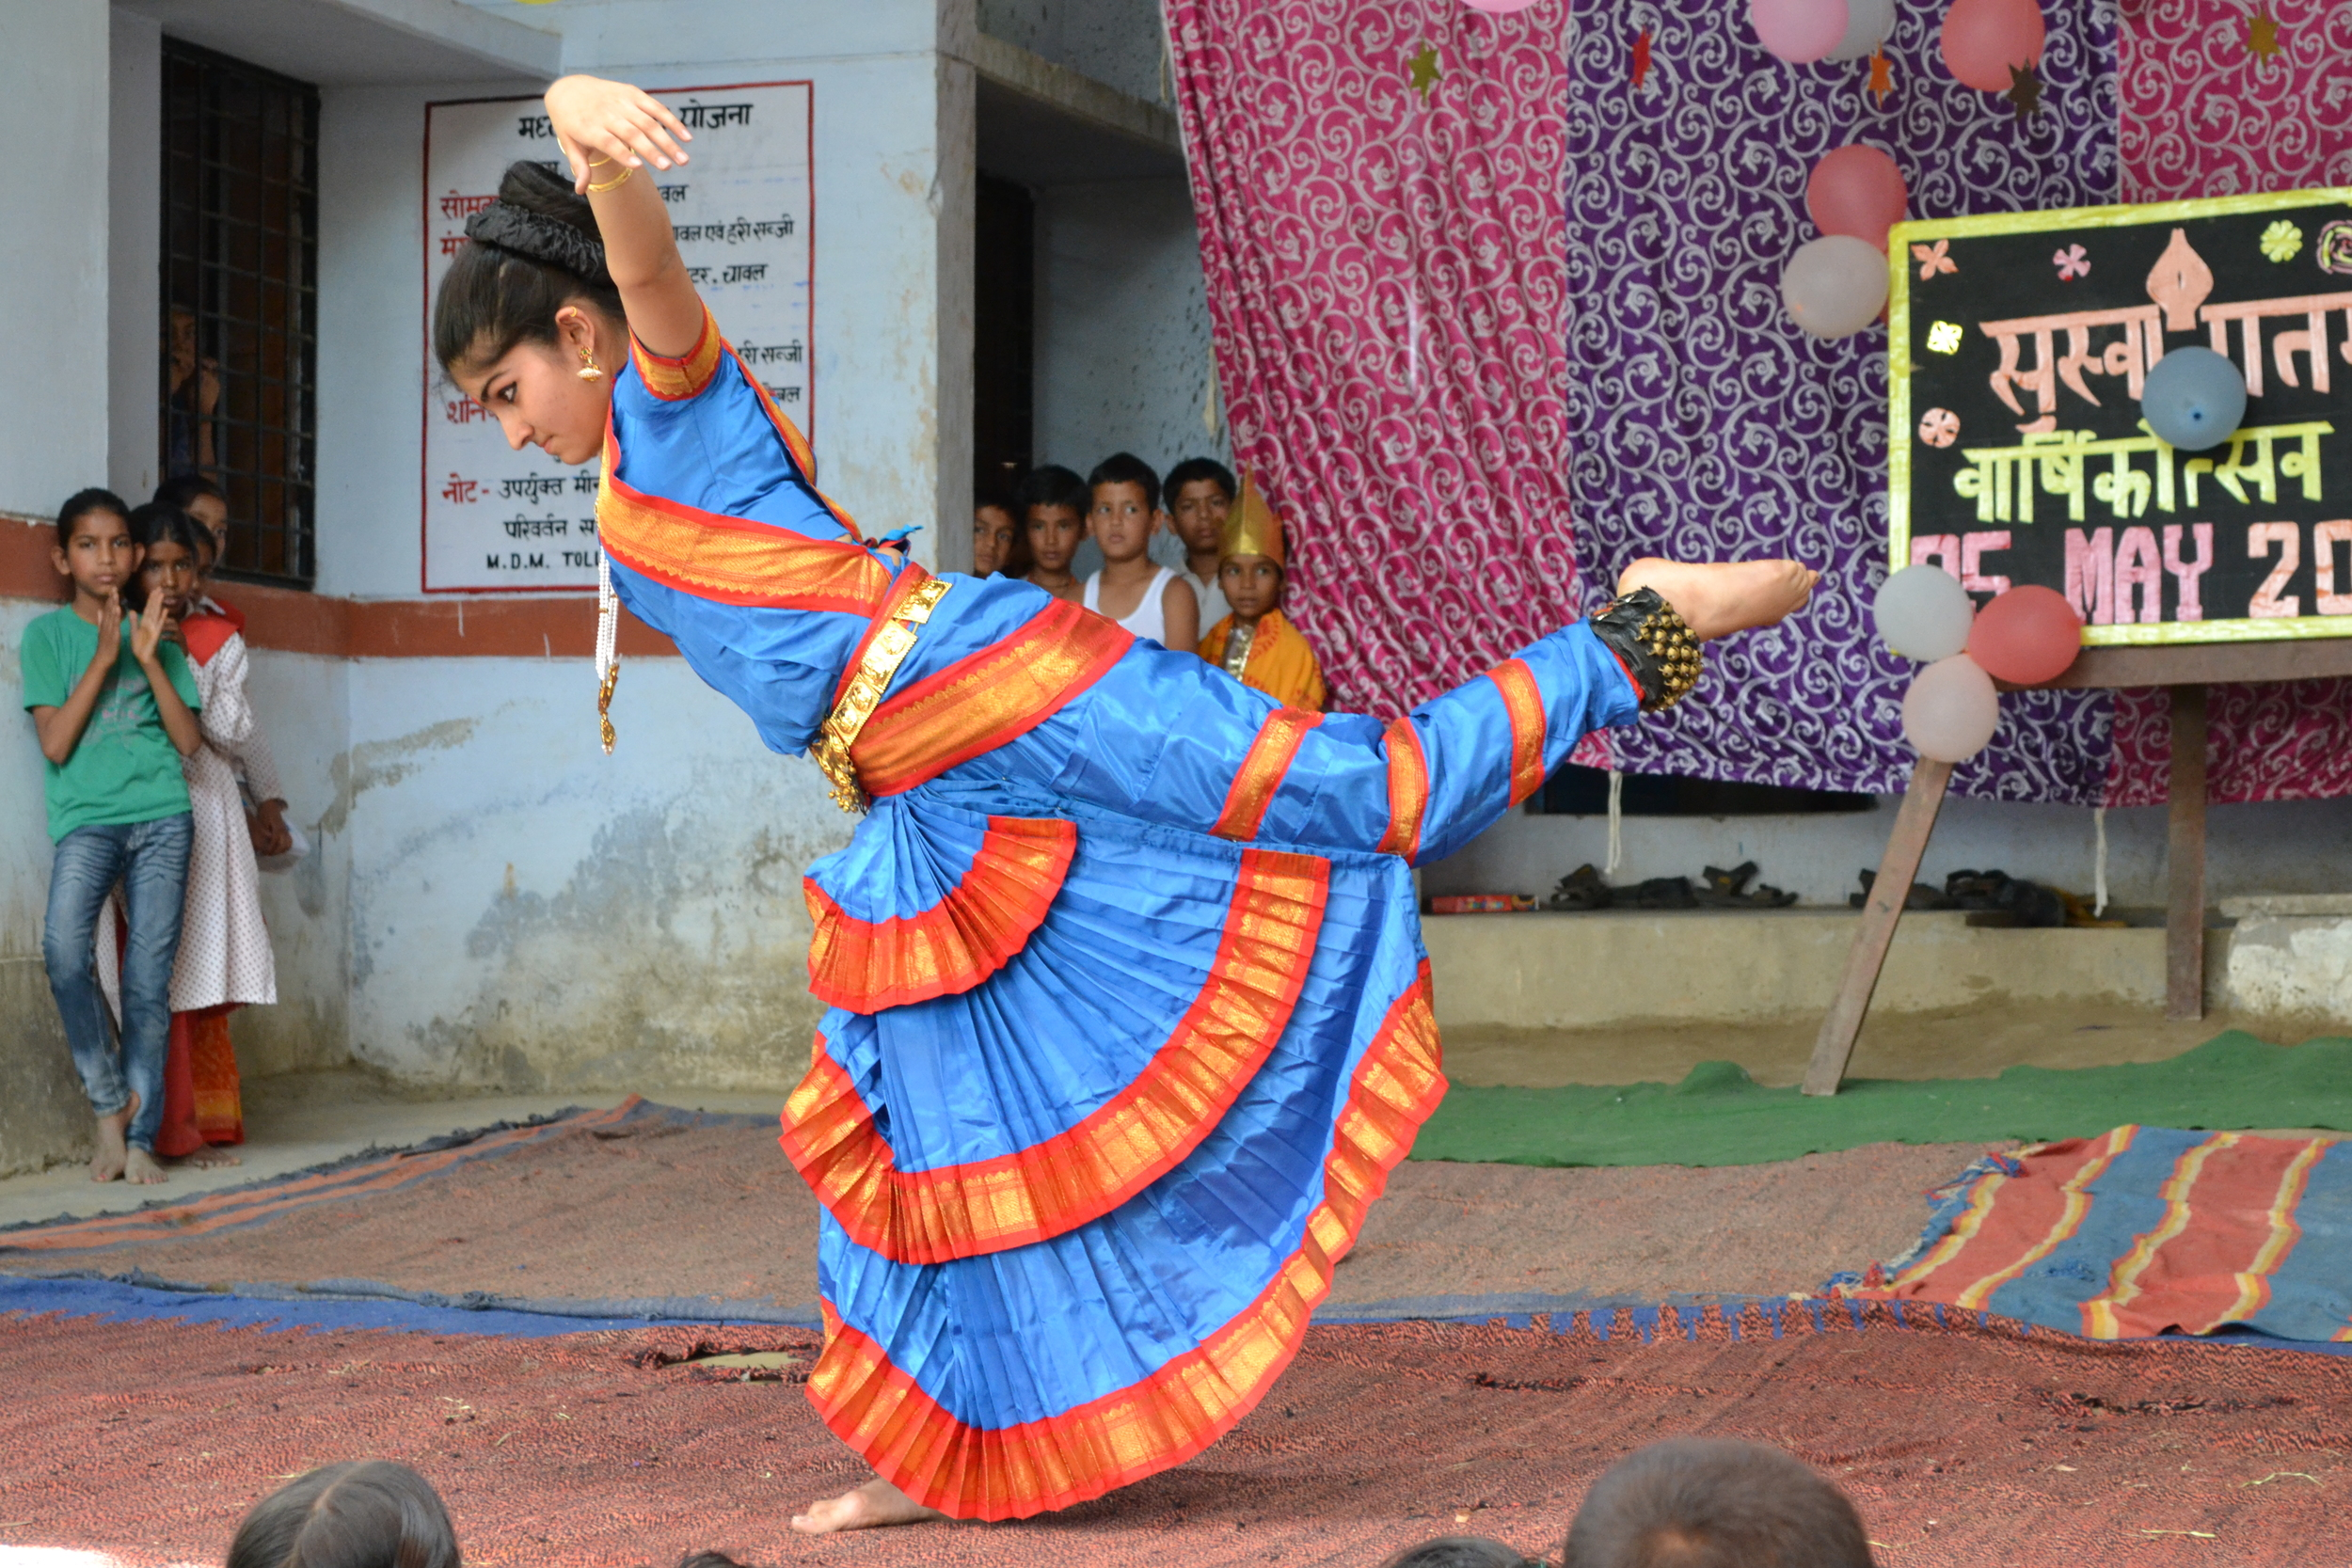 Rachna's daughter, Tara, performs a classical dance for the local village school.